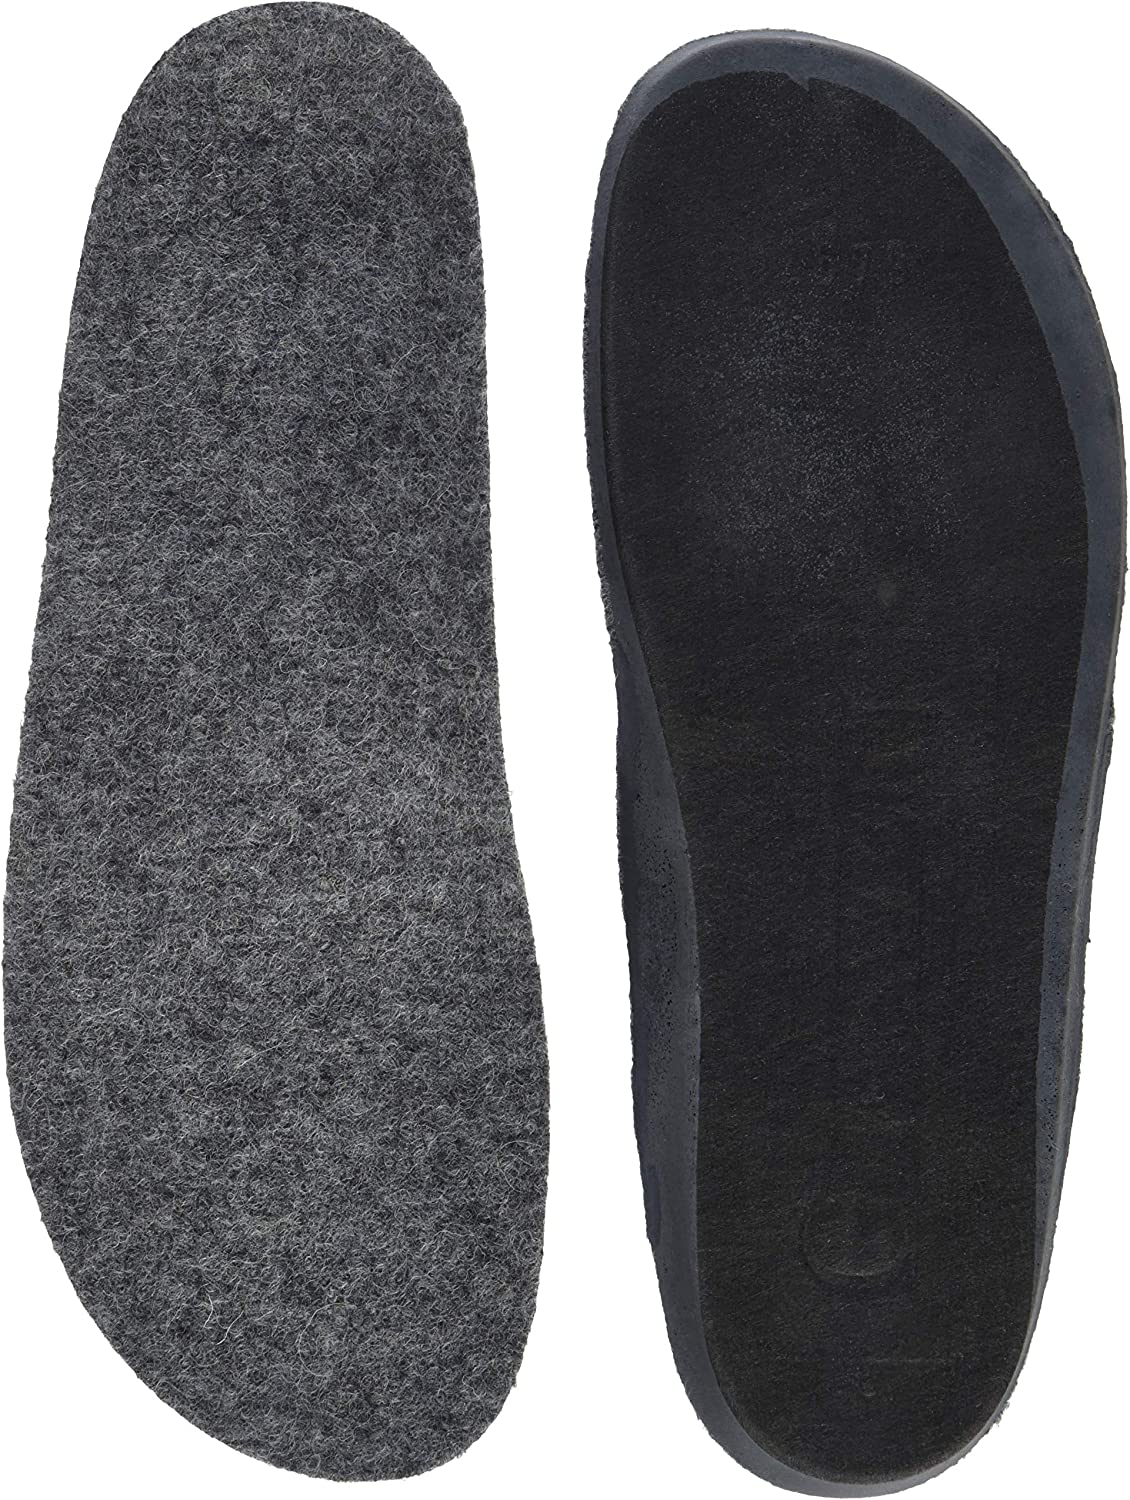 Giesswein Unisex Adults Sneakers Sacramento Mall Max 43% OFF Slippers Low-Top